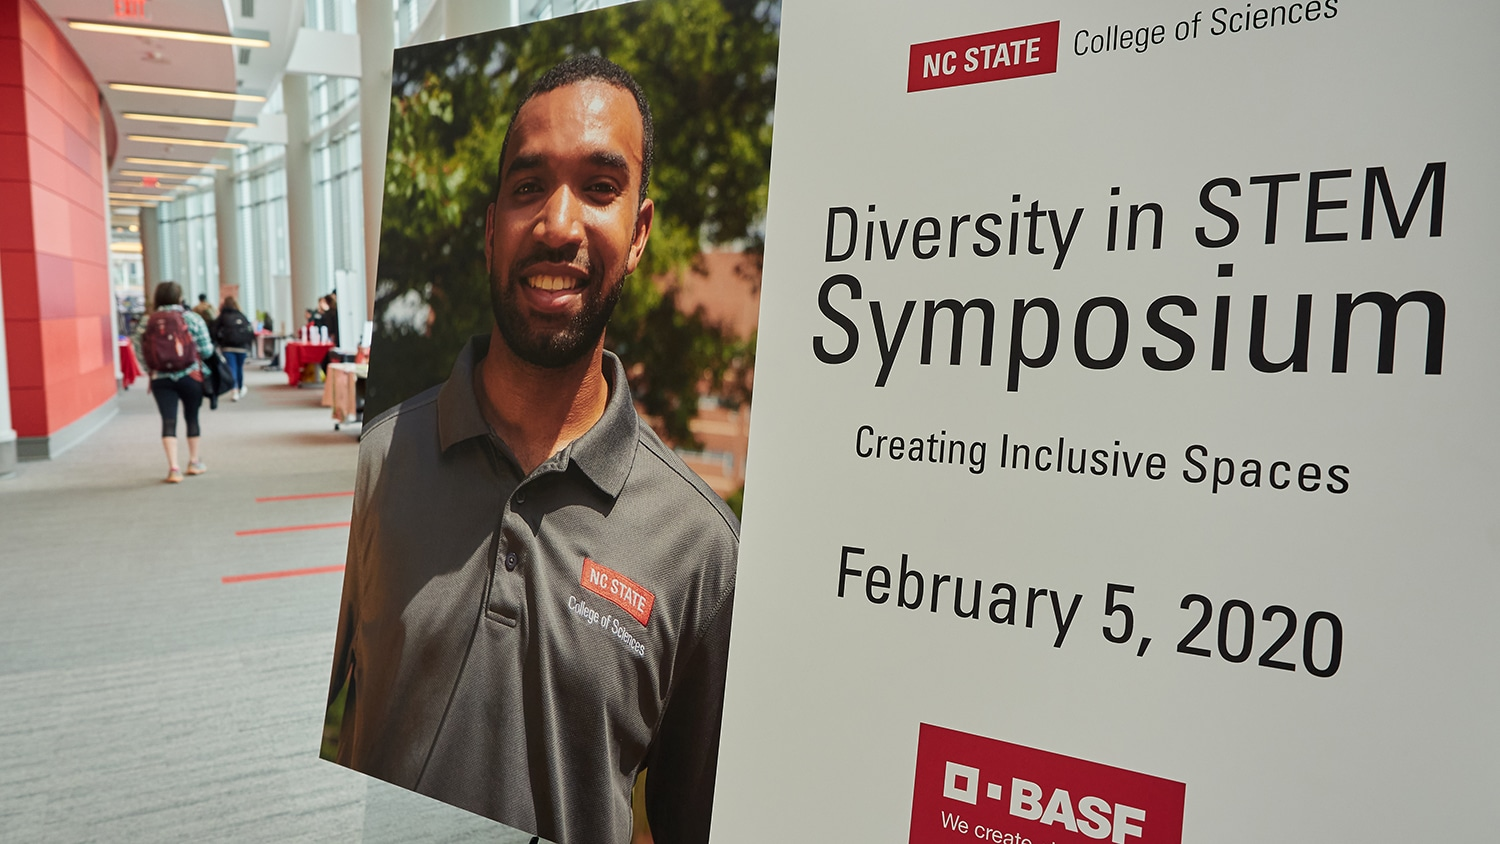 Diversity in STEM Symposium sign in a hallway